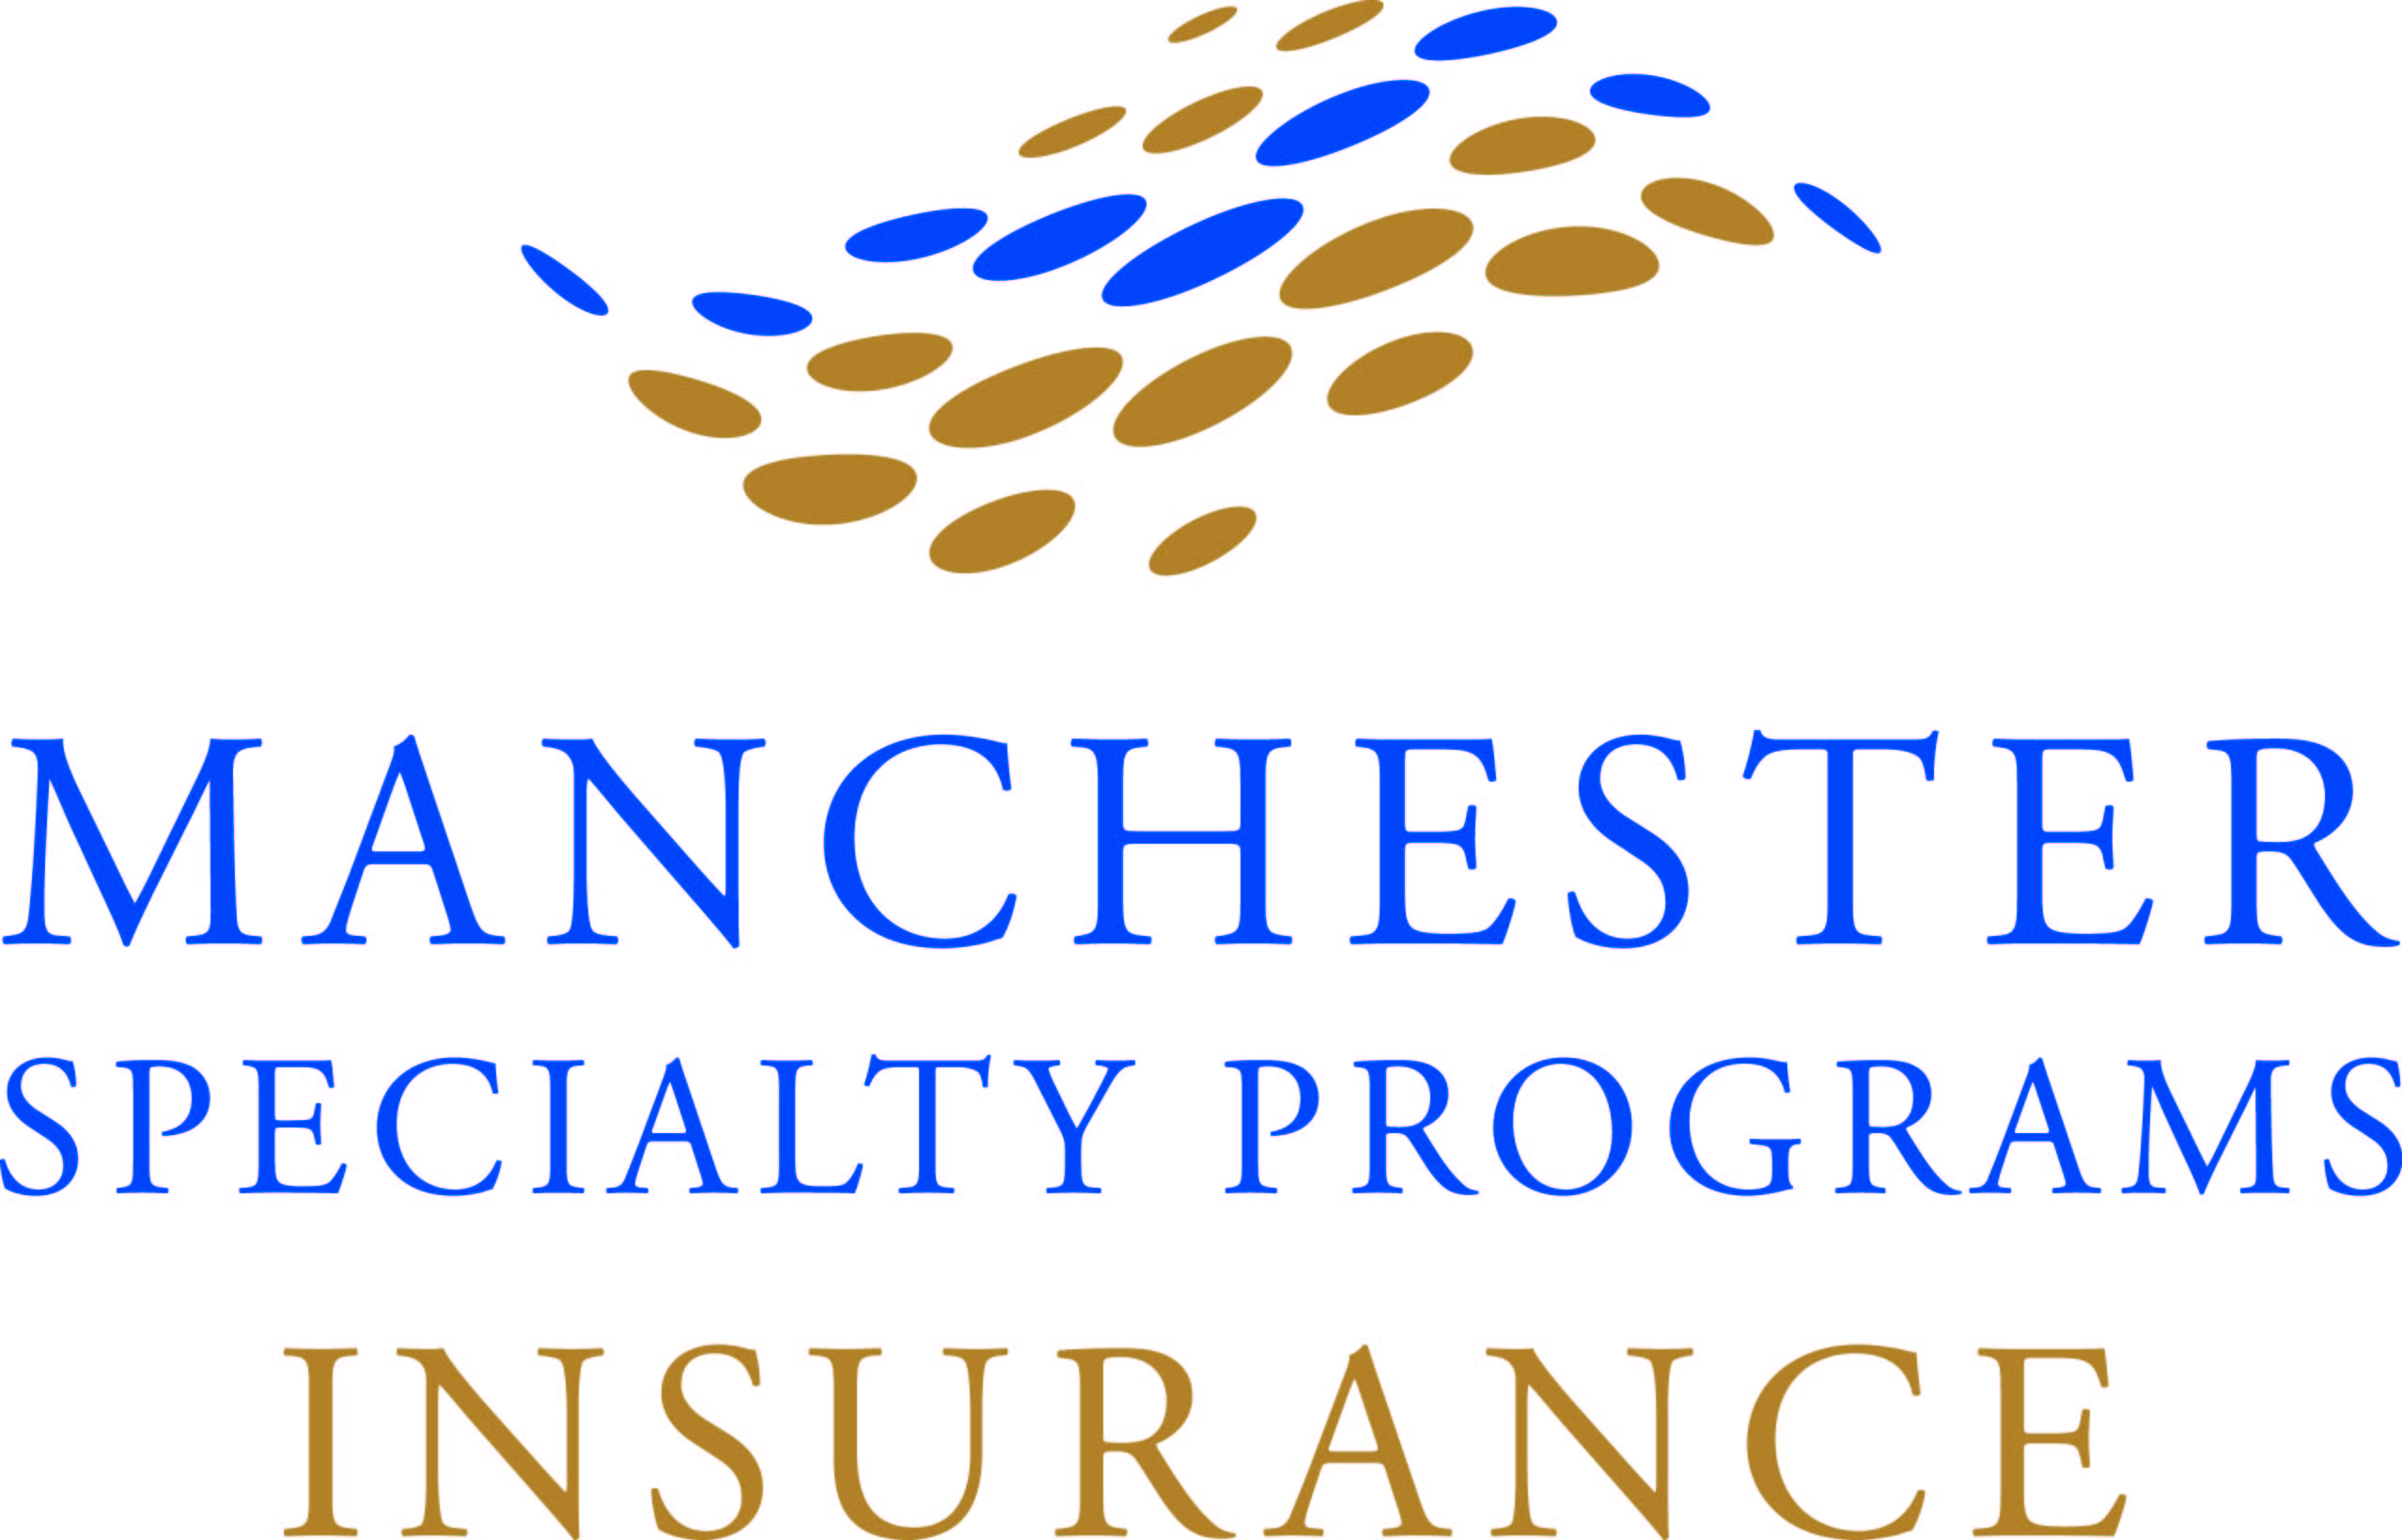 Manchester Specialty Programs Insurance logo